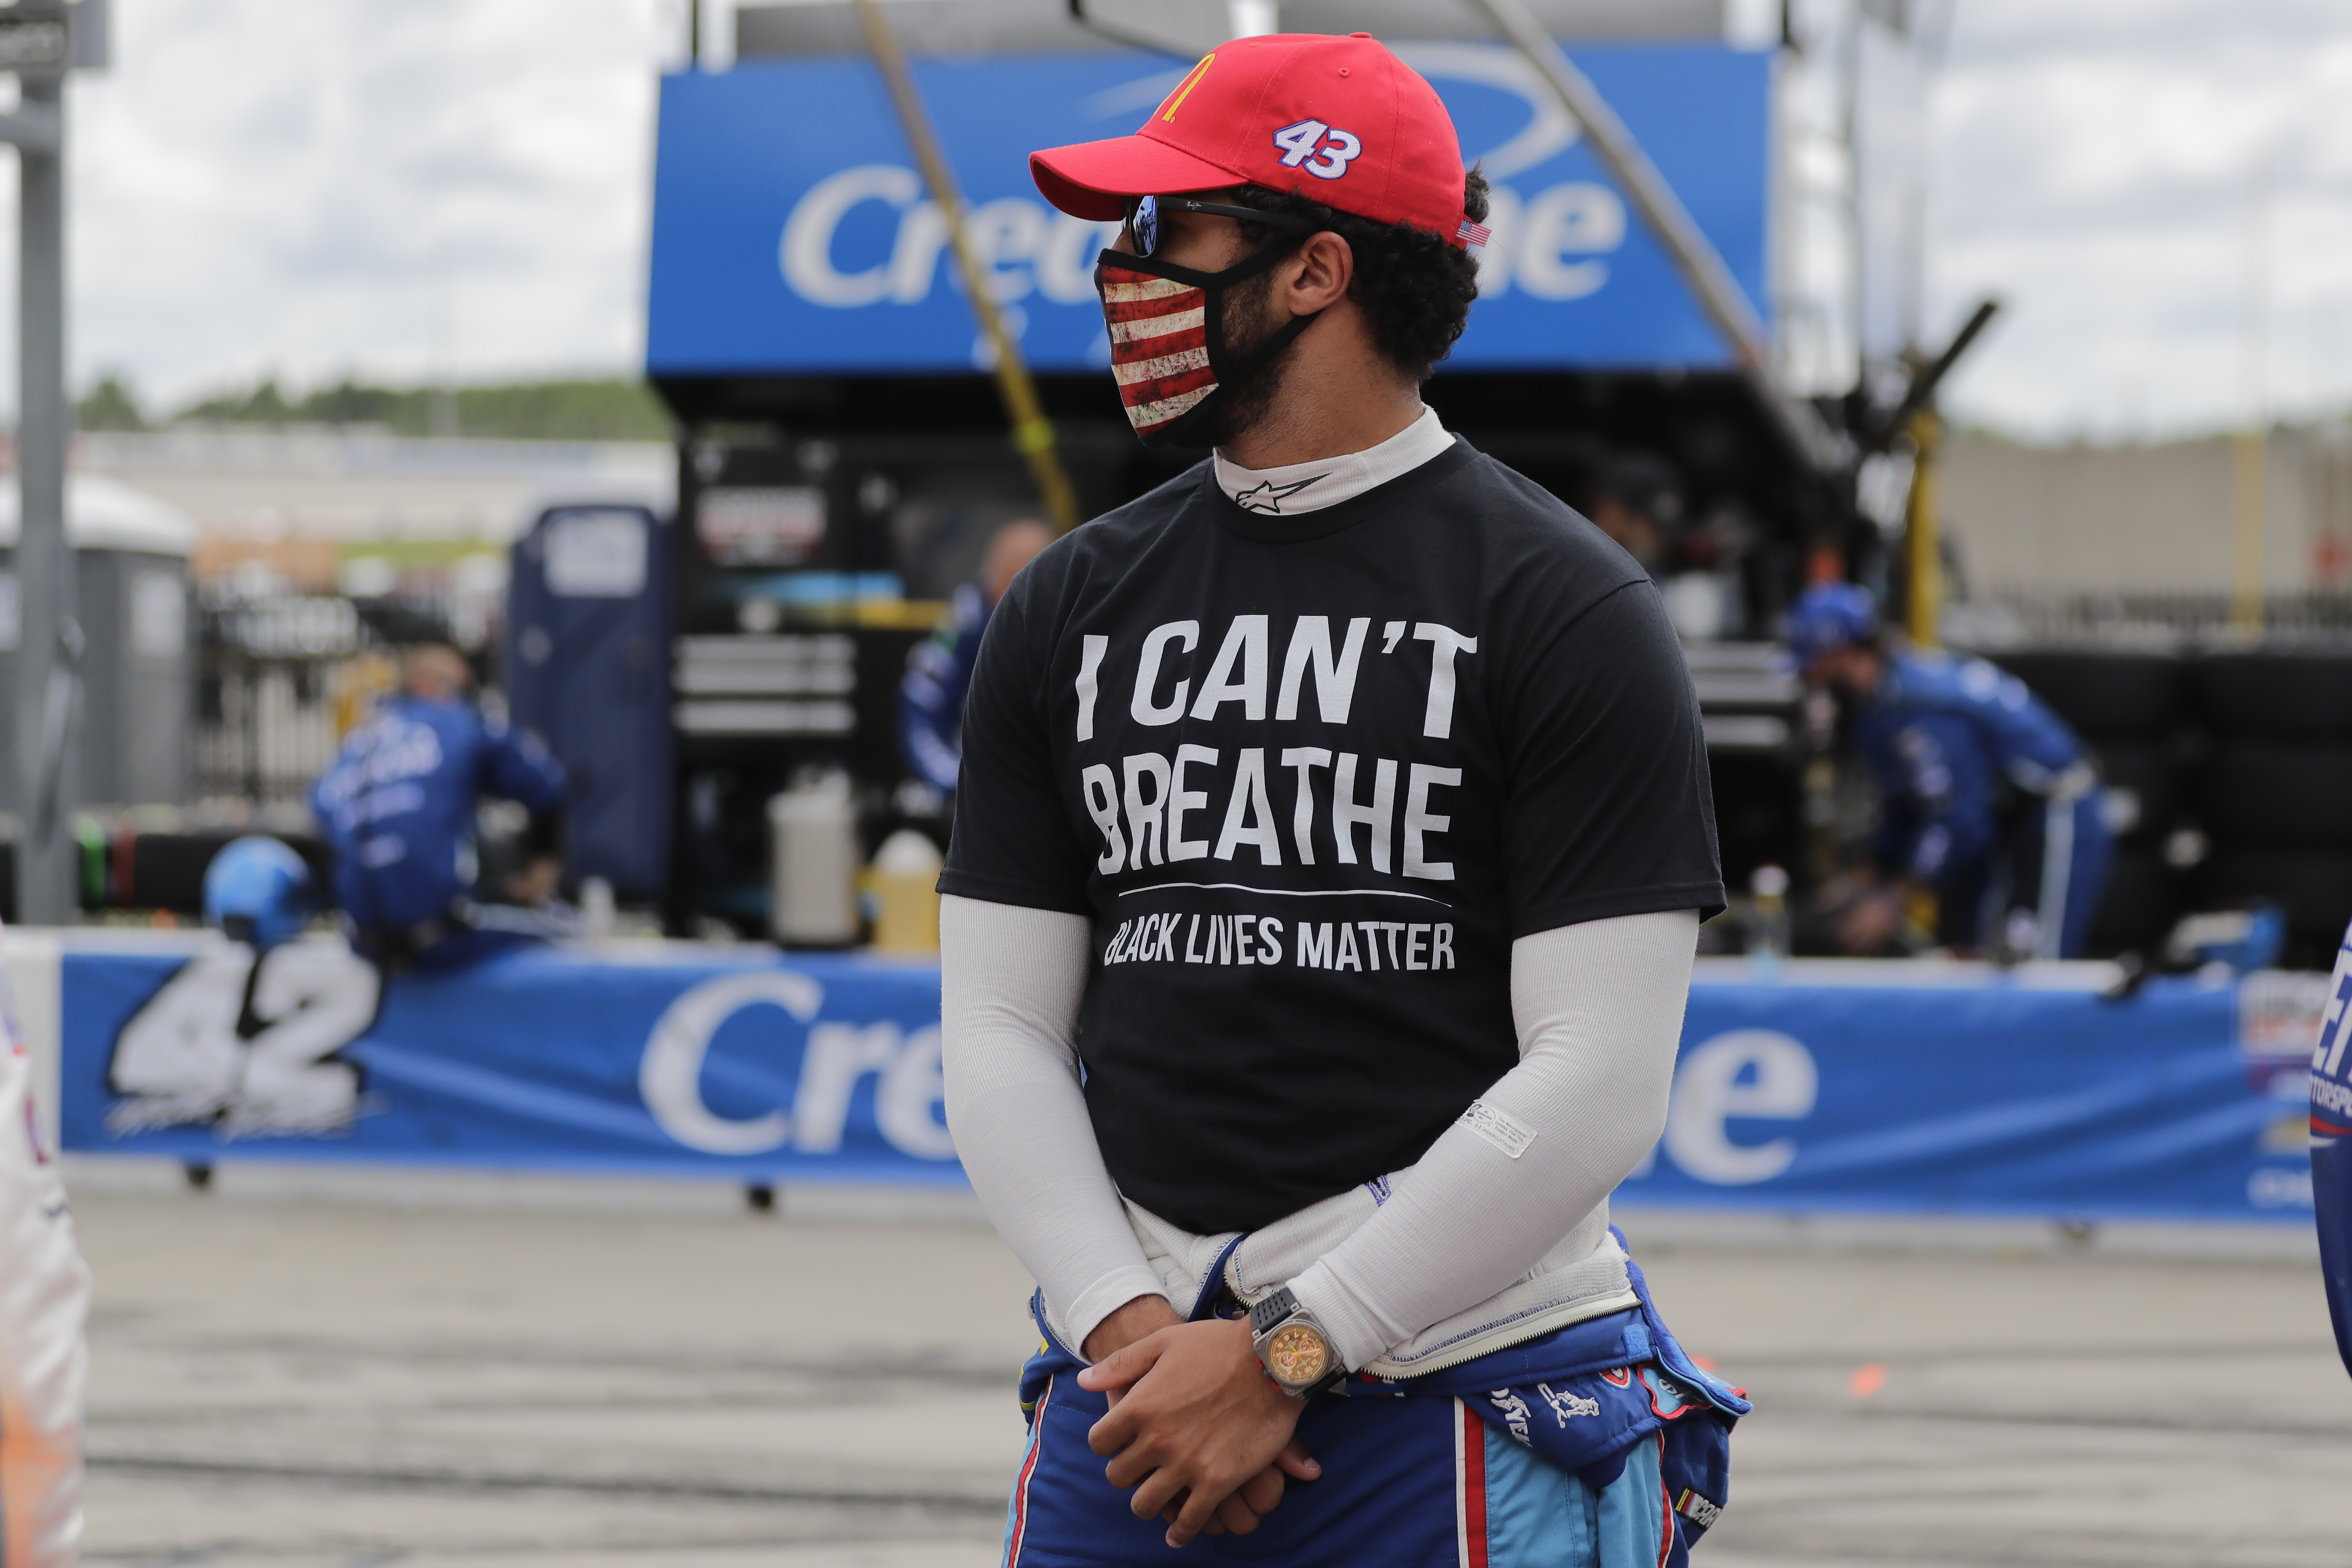 NASCAR Bans Fans From Displaying The Confederate Flag At Racetracks Bubba Wallace